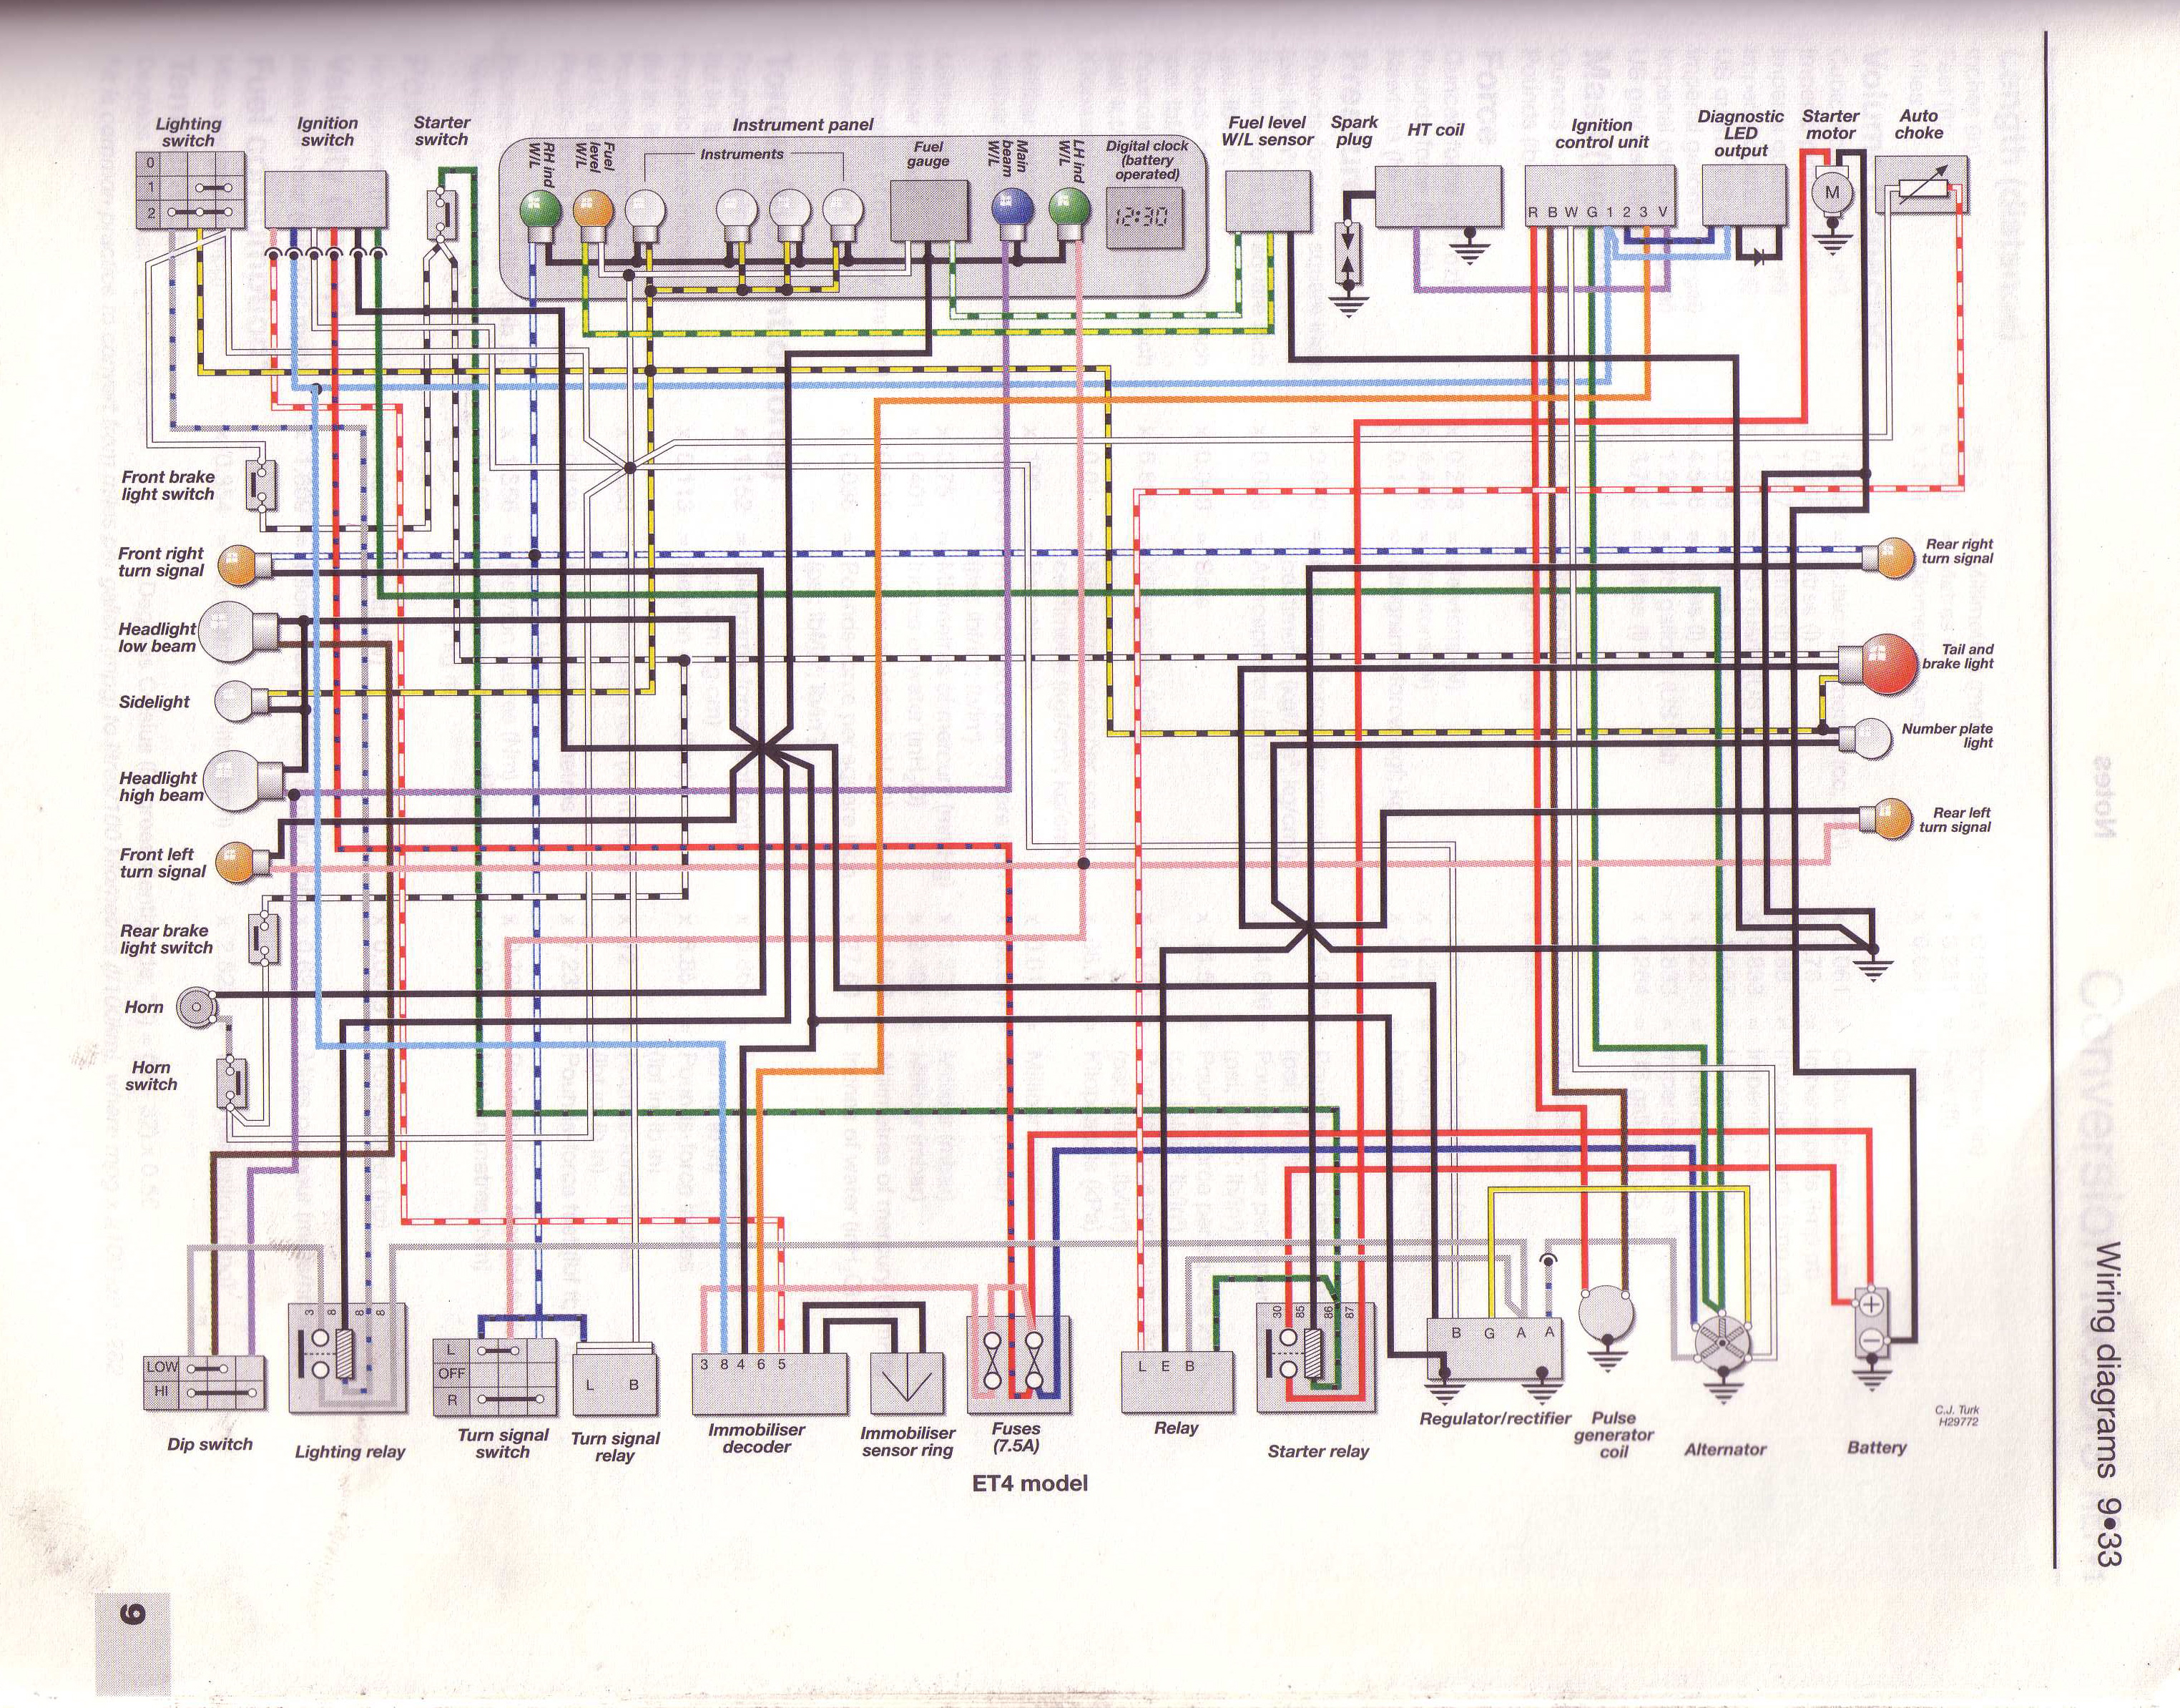 vespa gt200 wiring diagram index of manuals et4  index of manuals et4